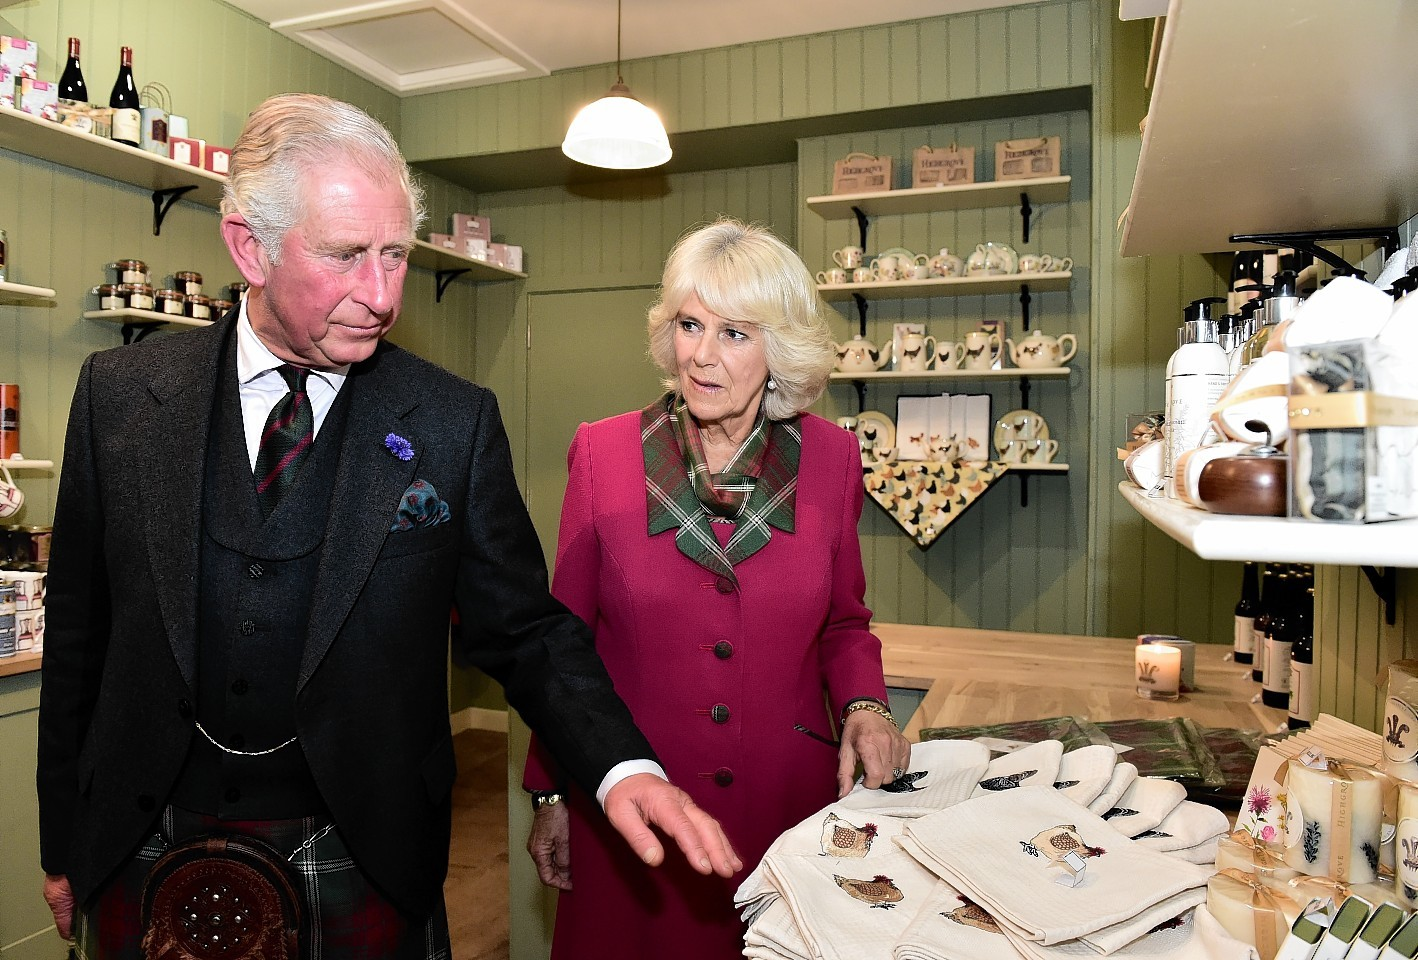 The Duke of Rothesay, Prince Charles, accompanied by Camilla the Duchess of Rothesay, previewed the new Rothesay Restaurant and Highgrove shop in Ballater. Picture by Kami Thomson